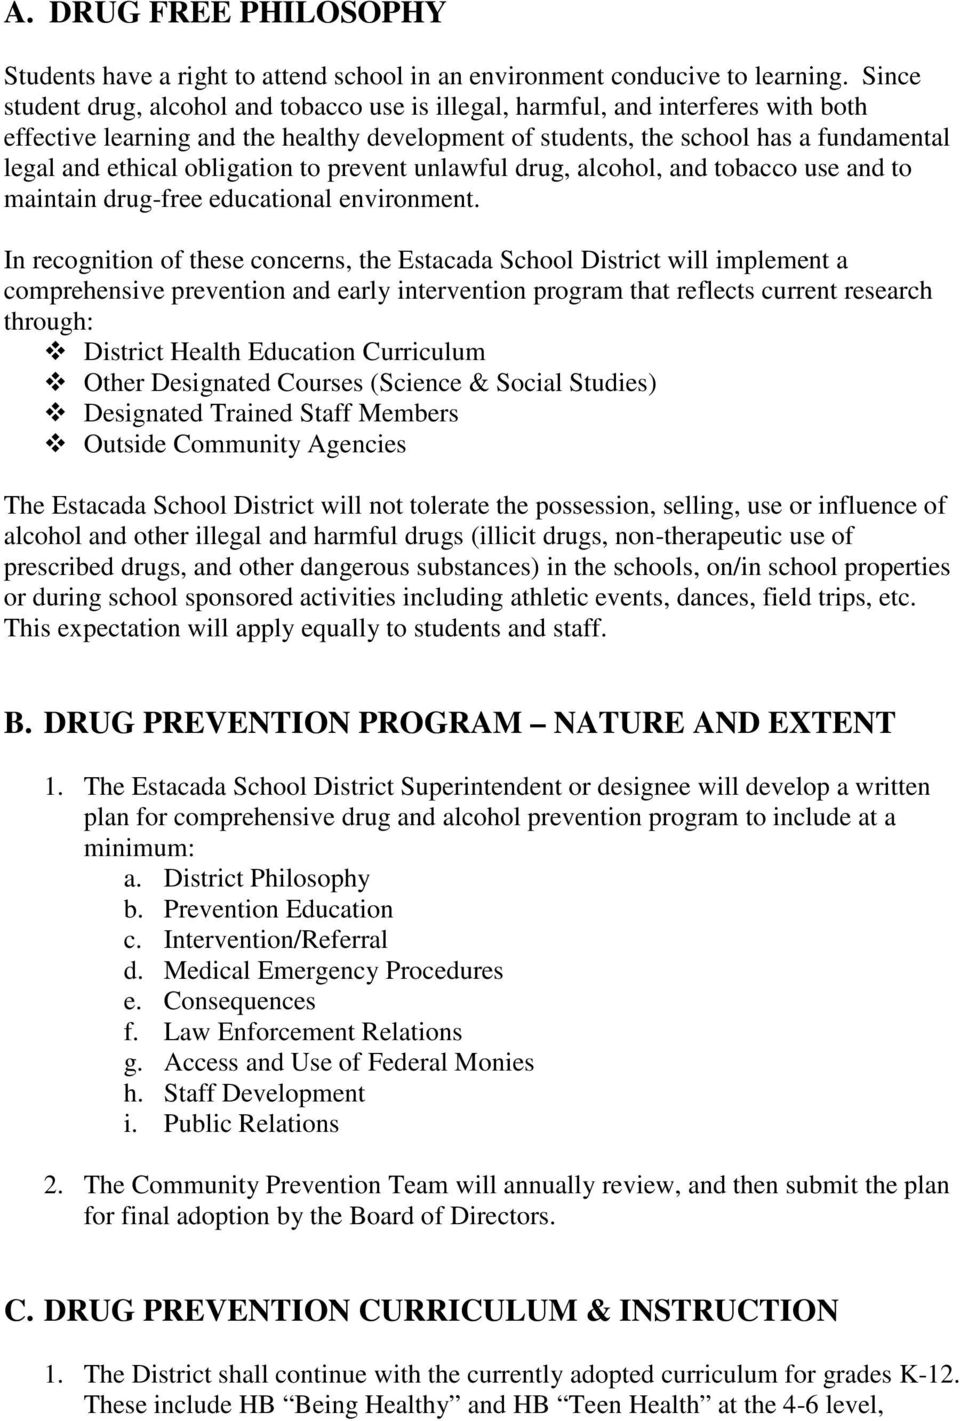 obligation to prevent unlawful drug, alcohol, and tobacco use and to maintain drug-free educational environment.